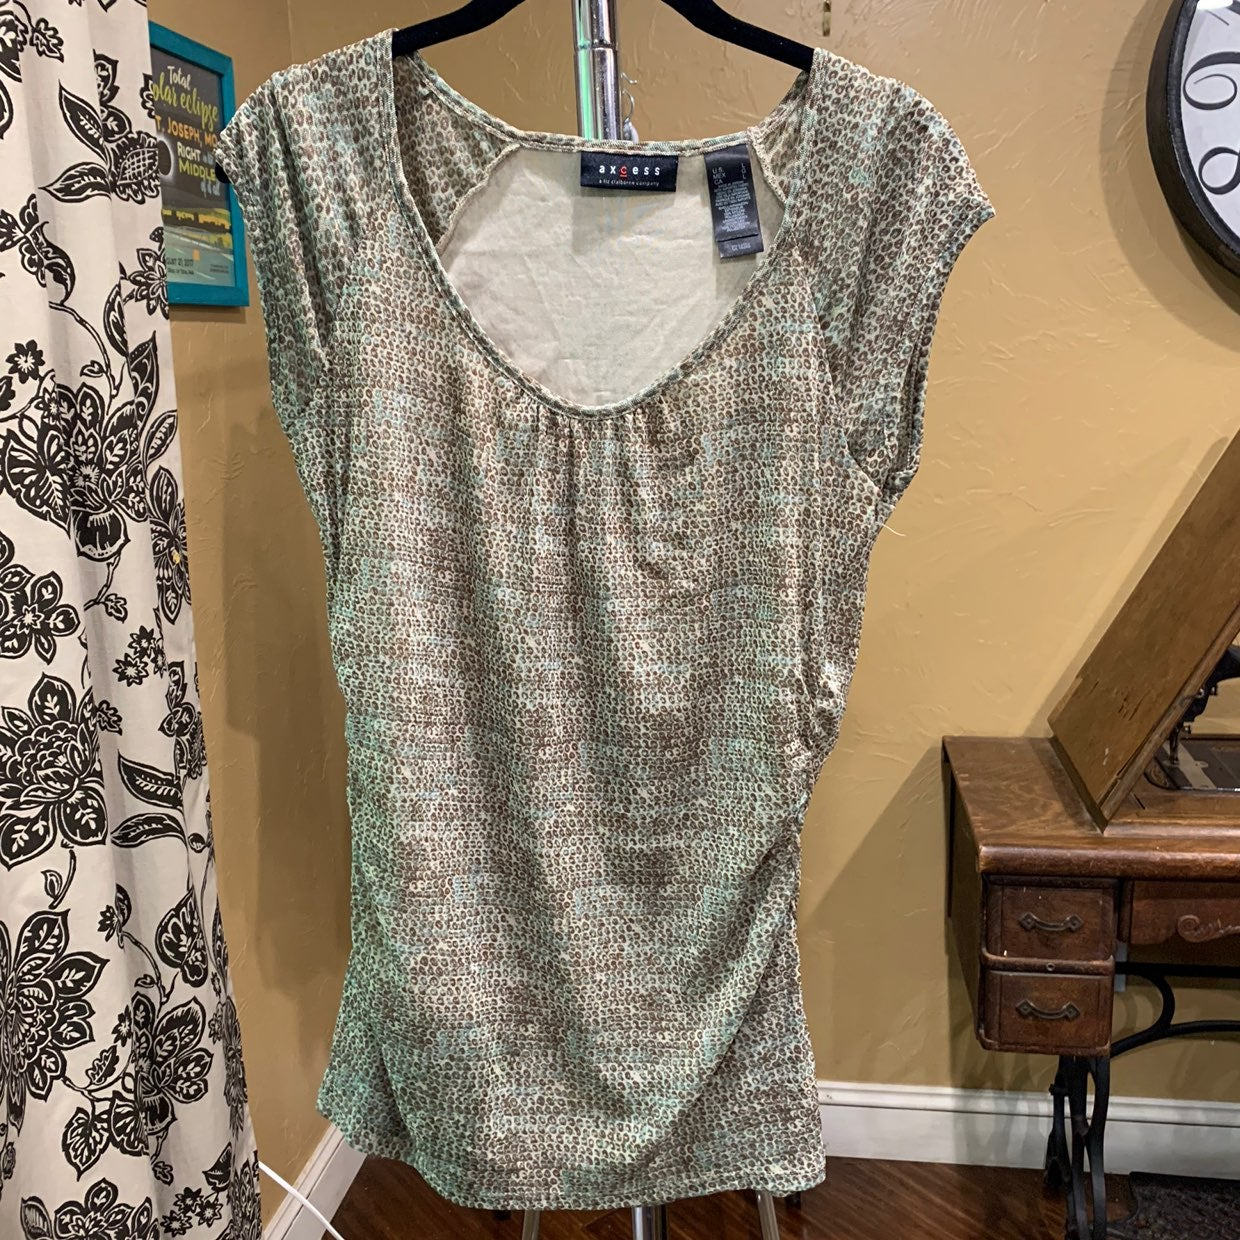 Large casual blouse with ruched sides